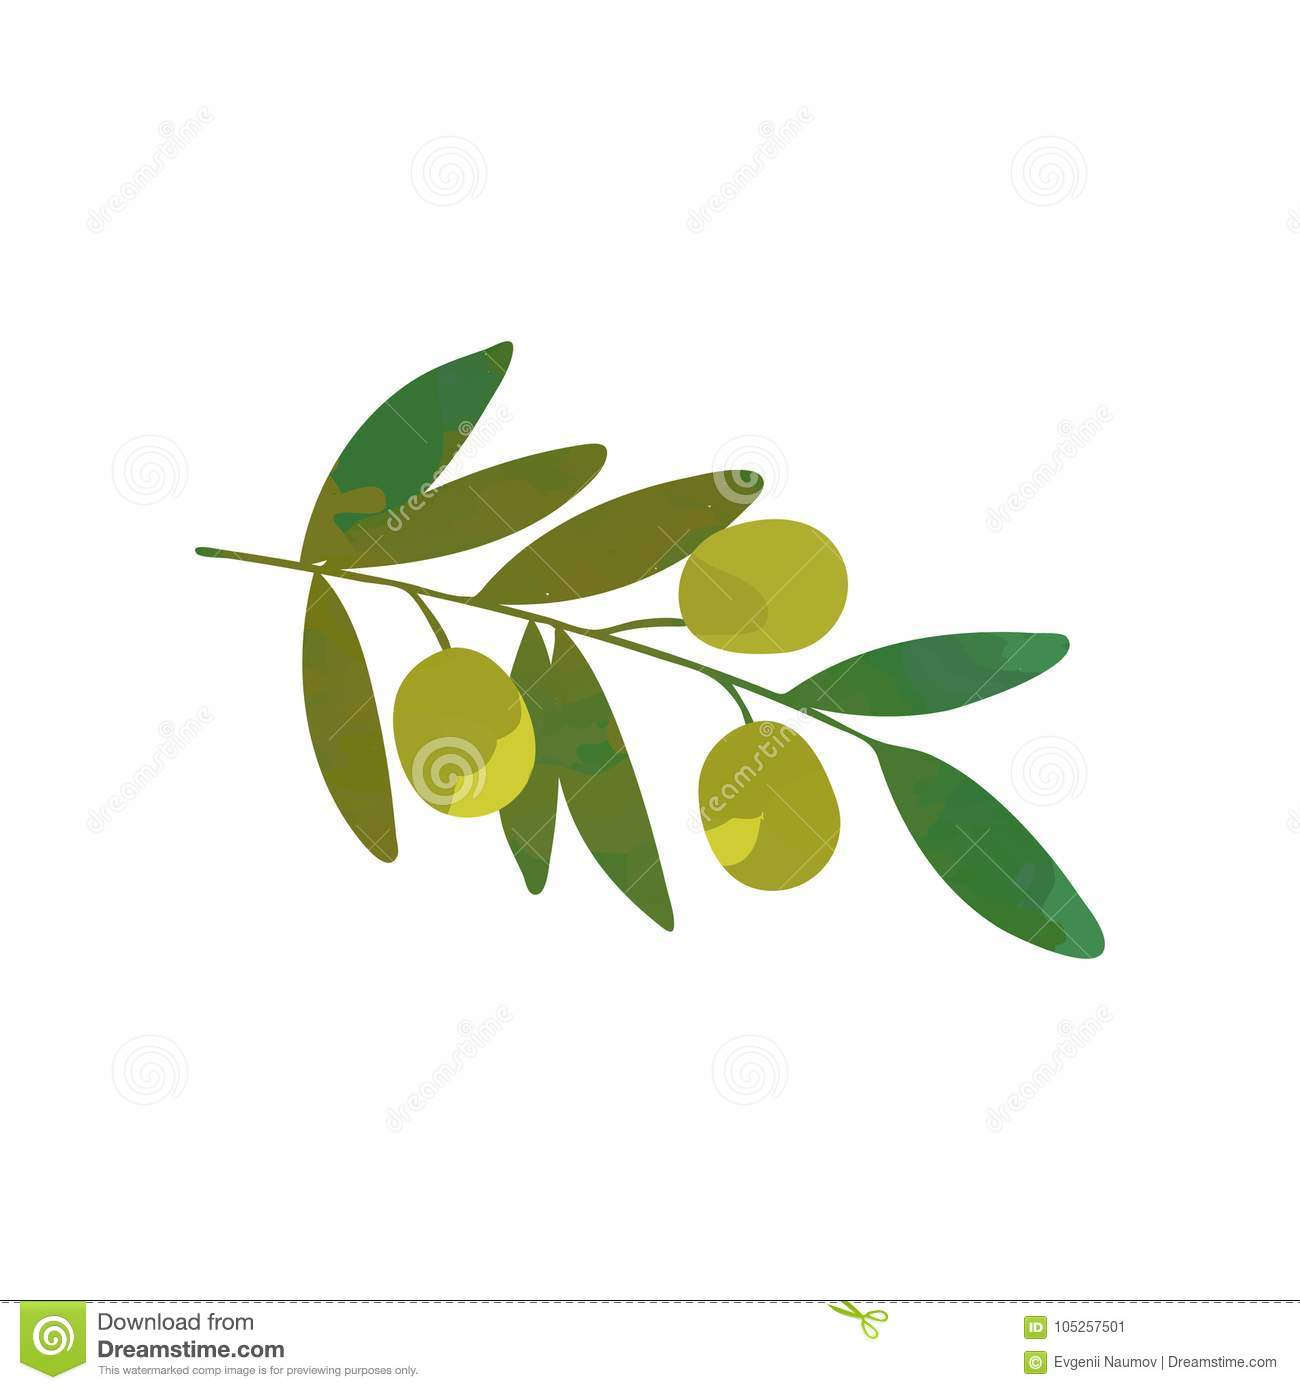 Cartoon branch of olive tree with green leaves traditional symbol cartoon branch of olive tree with green leaves traditional symbol of peace organic food product isolated flat vector buycottarizona Choice Image